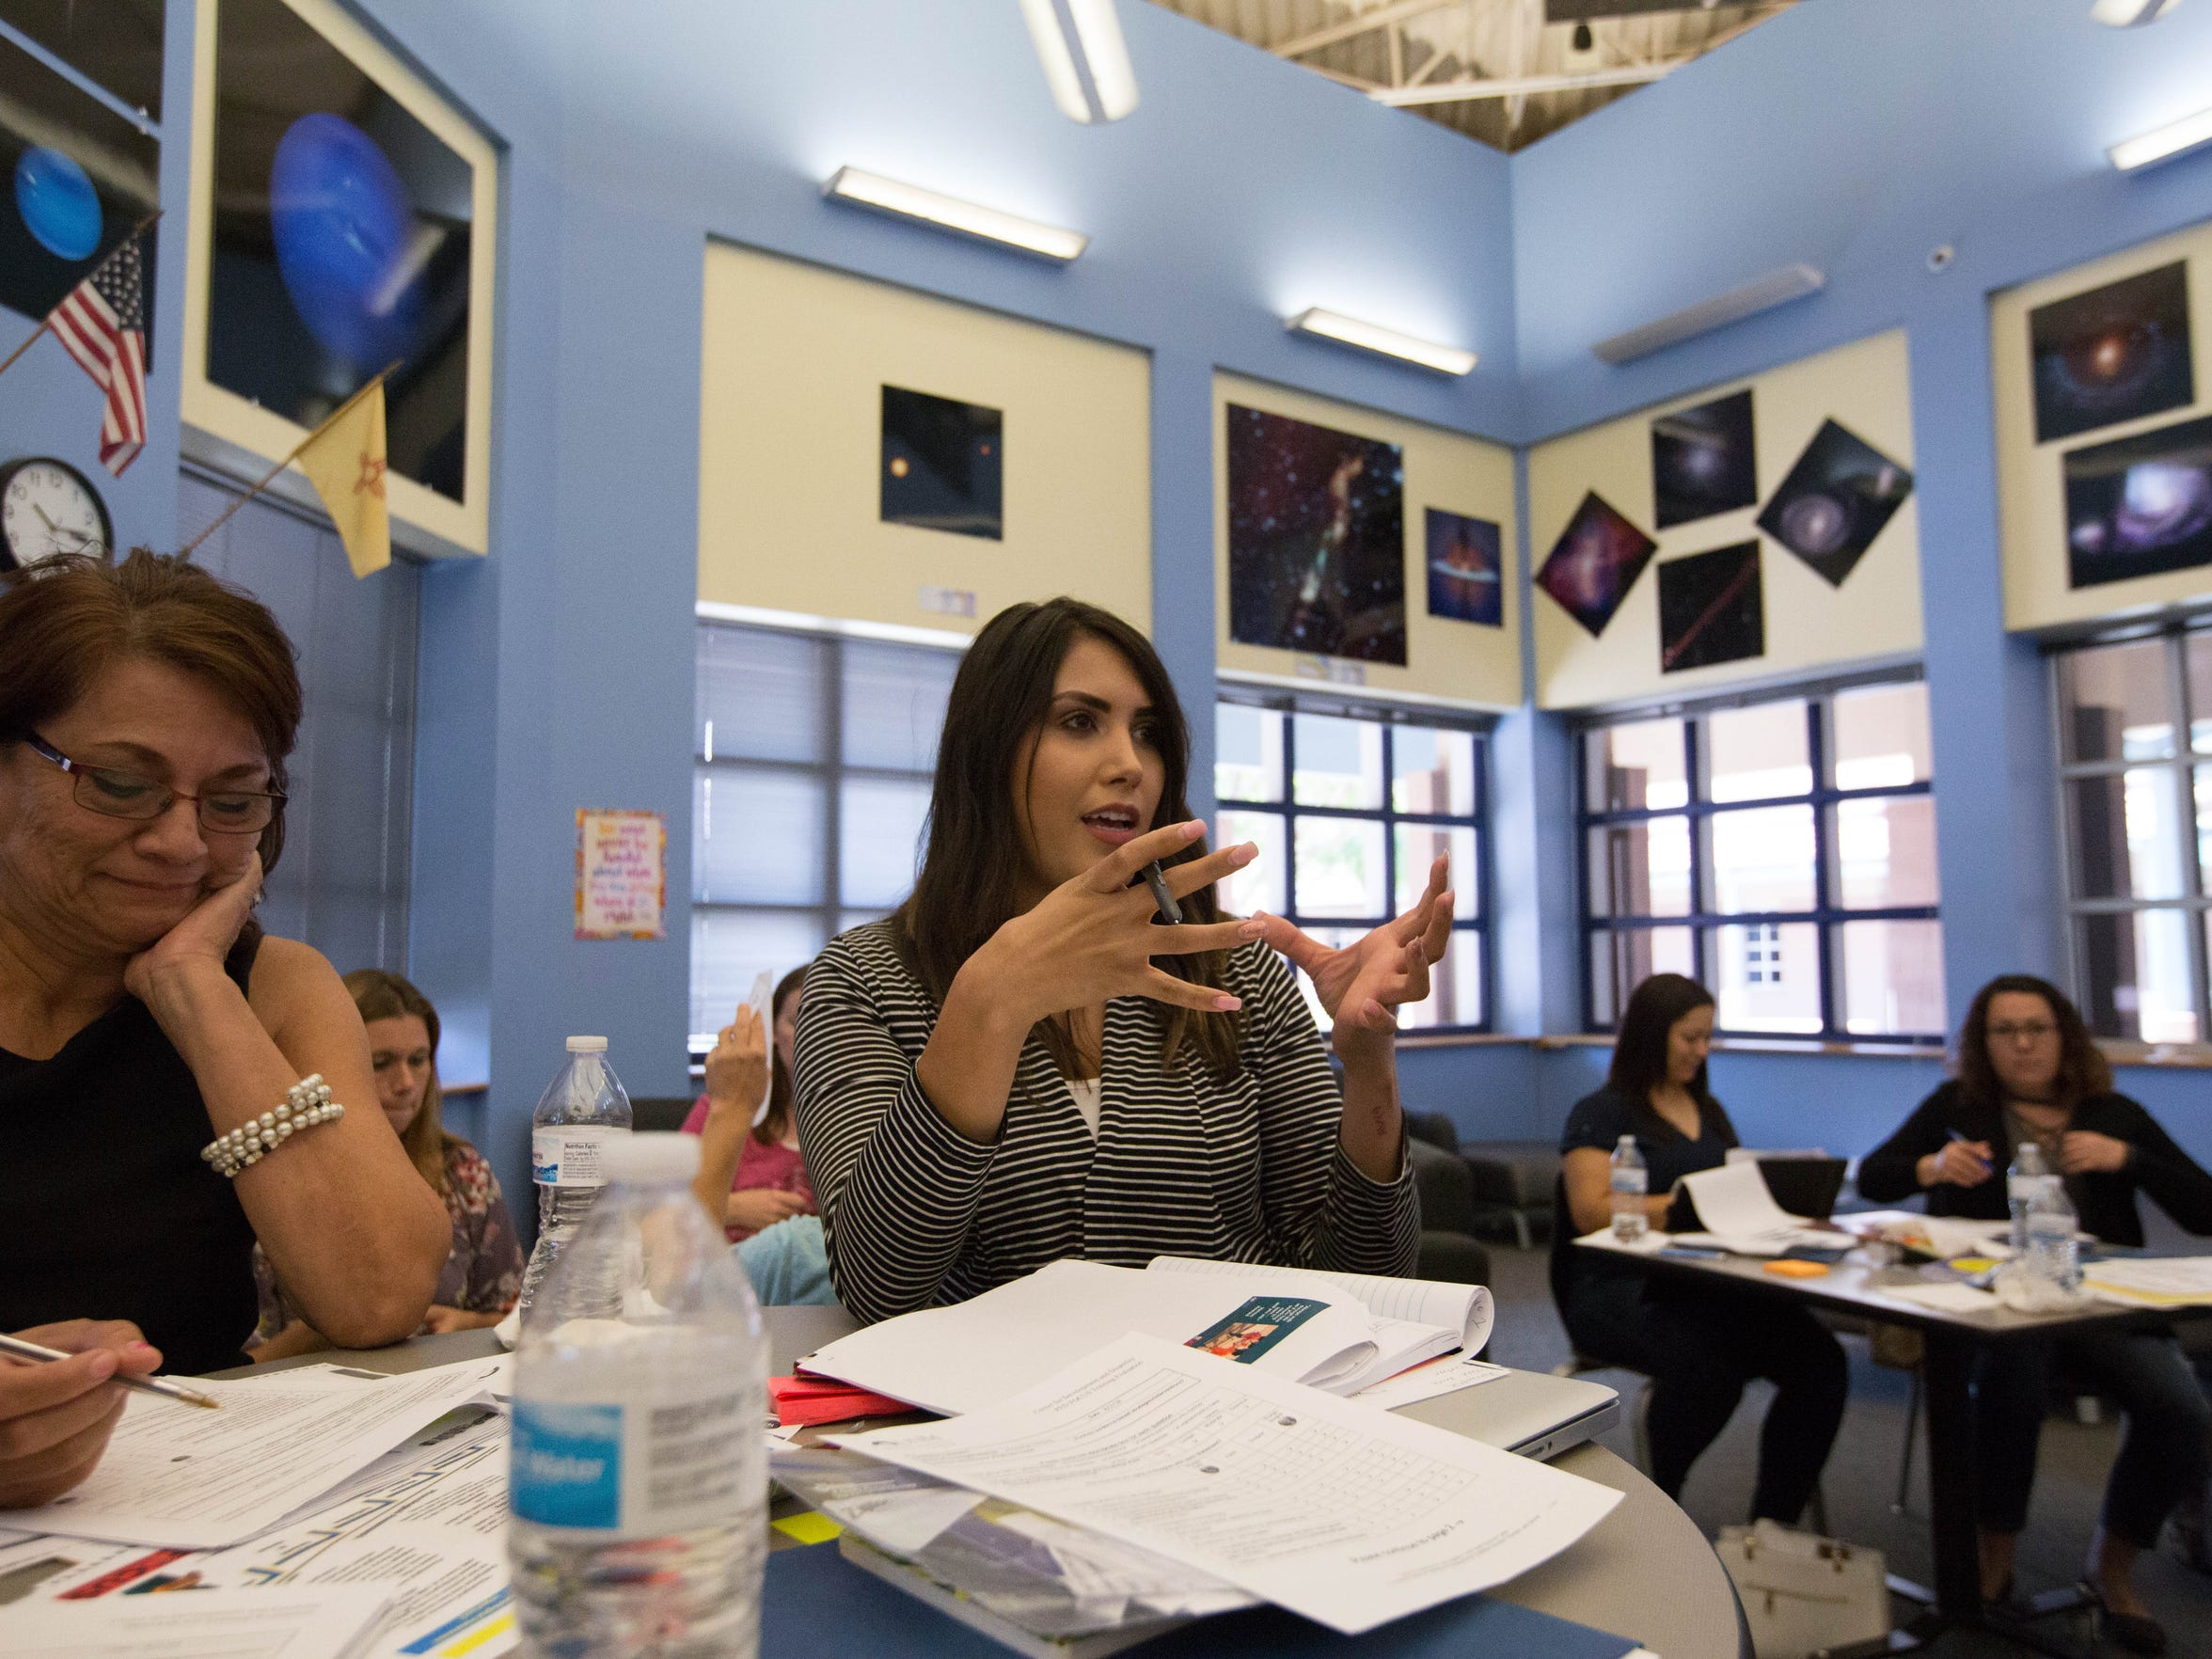 Amy Lerma, center,  a Head Start teacher, asks questions about New Mexico teacher evaluations during a training given by the University of New Mexico's Center for Development and Disability, Thursday, August 2, 2018. Both Head Start and PreK teachers attended the training.